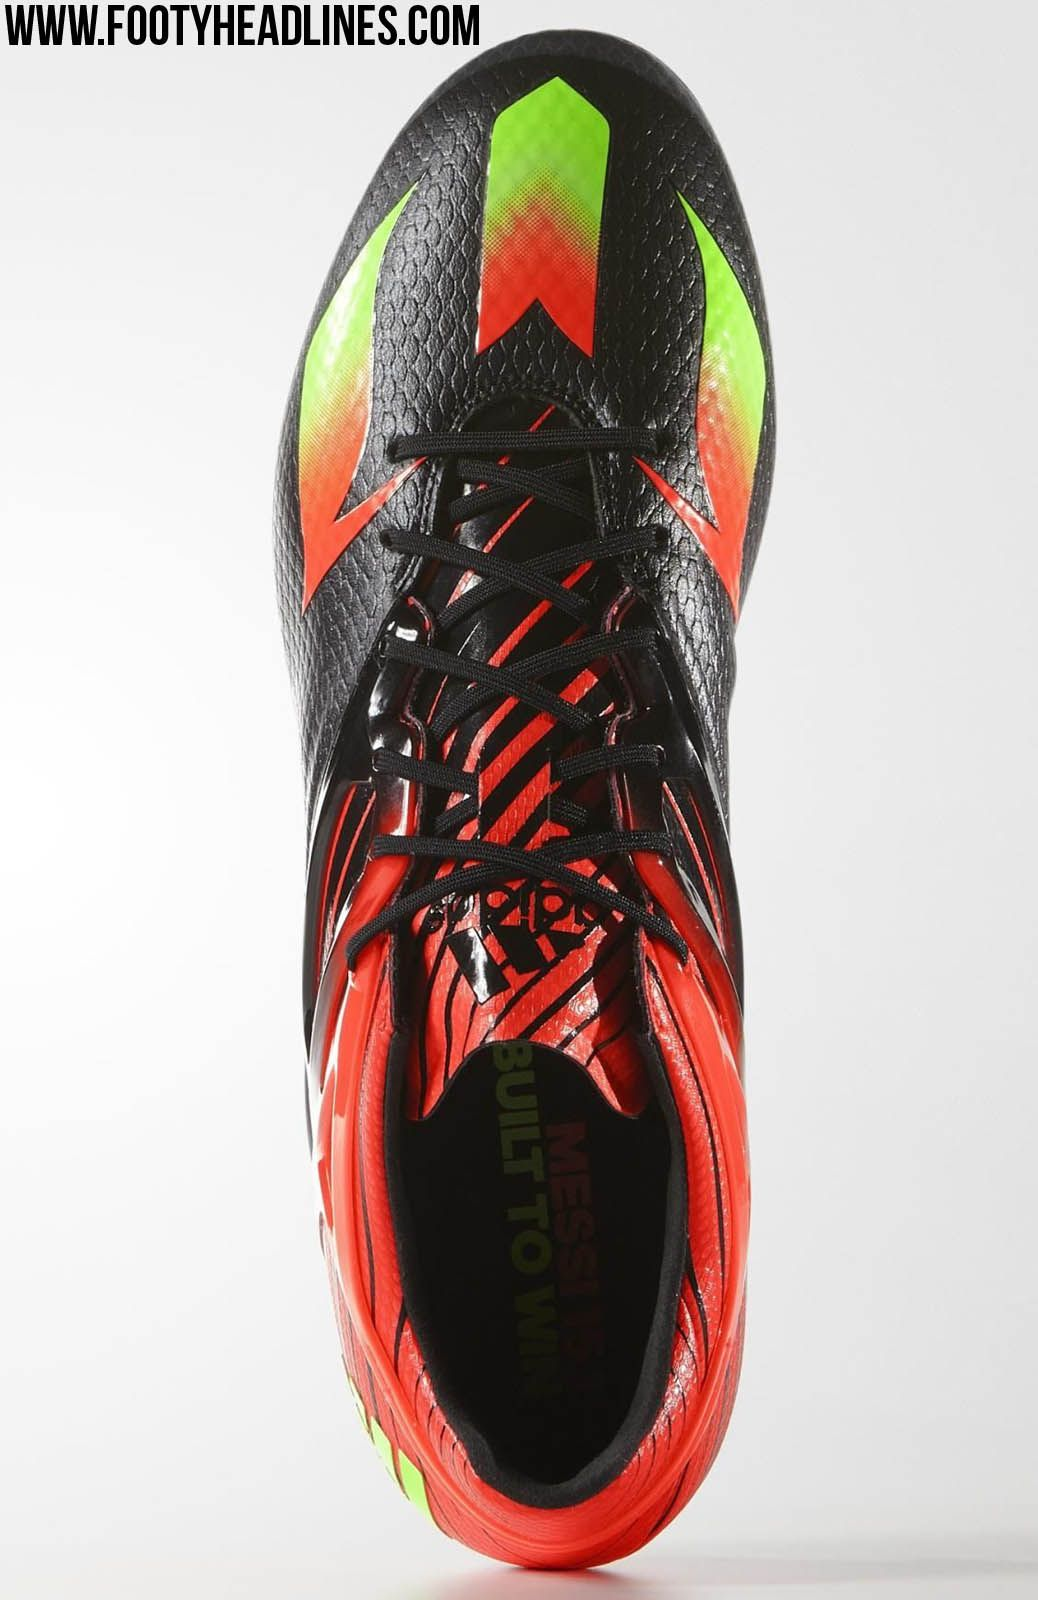 Good Striking Adidas Messi 2015 2016 Boots Leaked   Footy Headlines